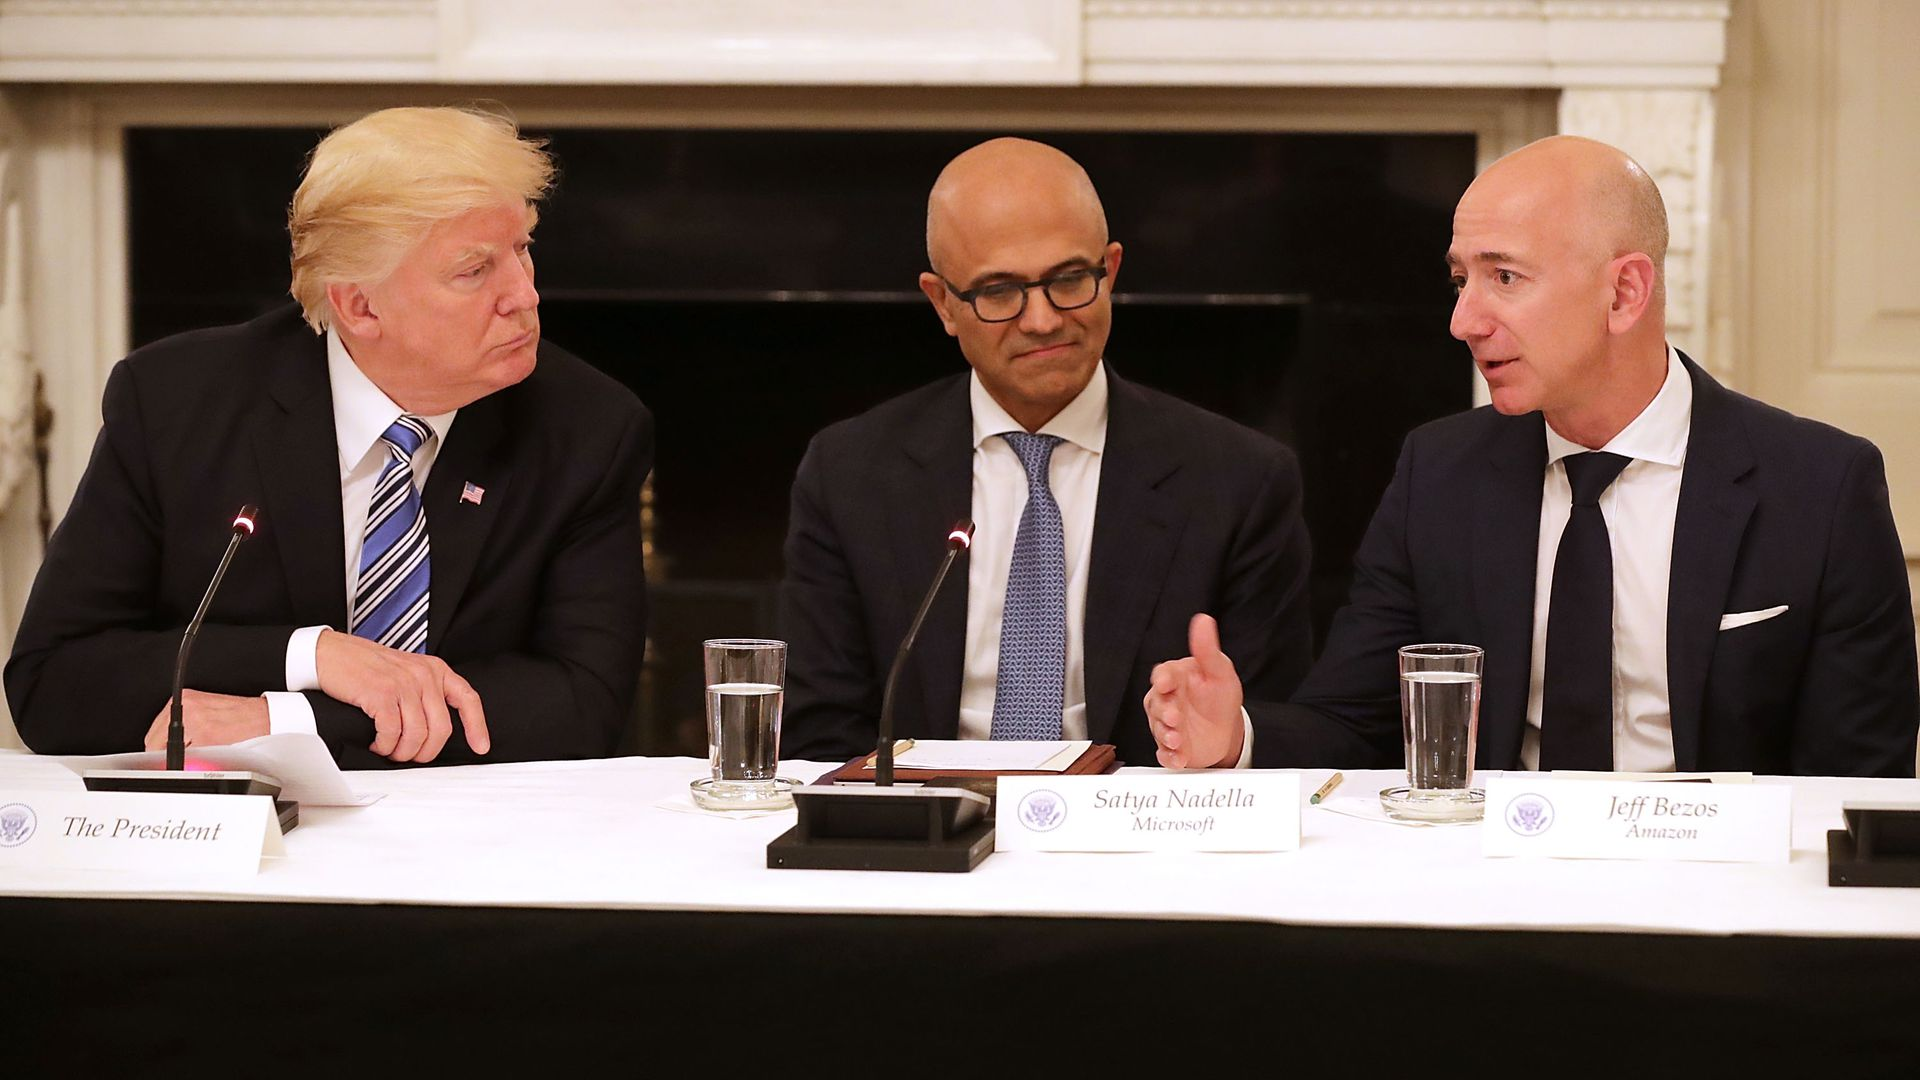 Donald Trump with the CEOs of Microsoft and Amazon